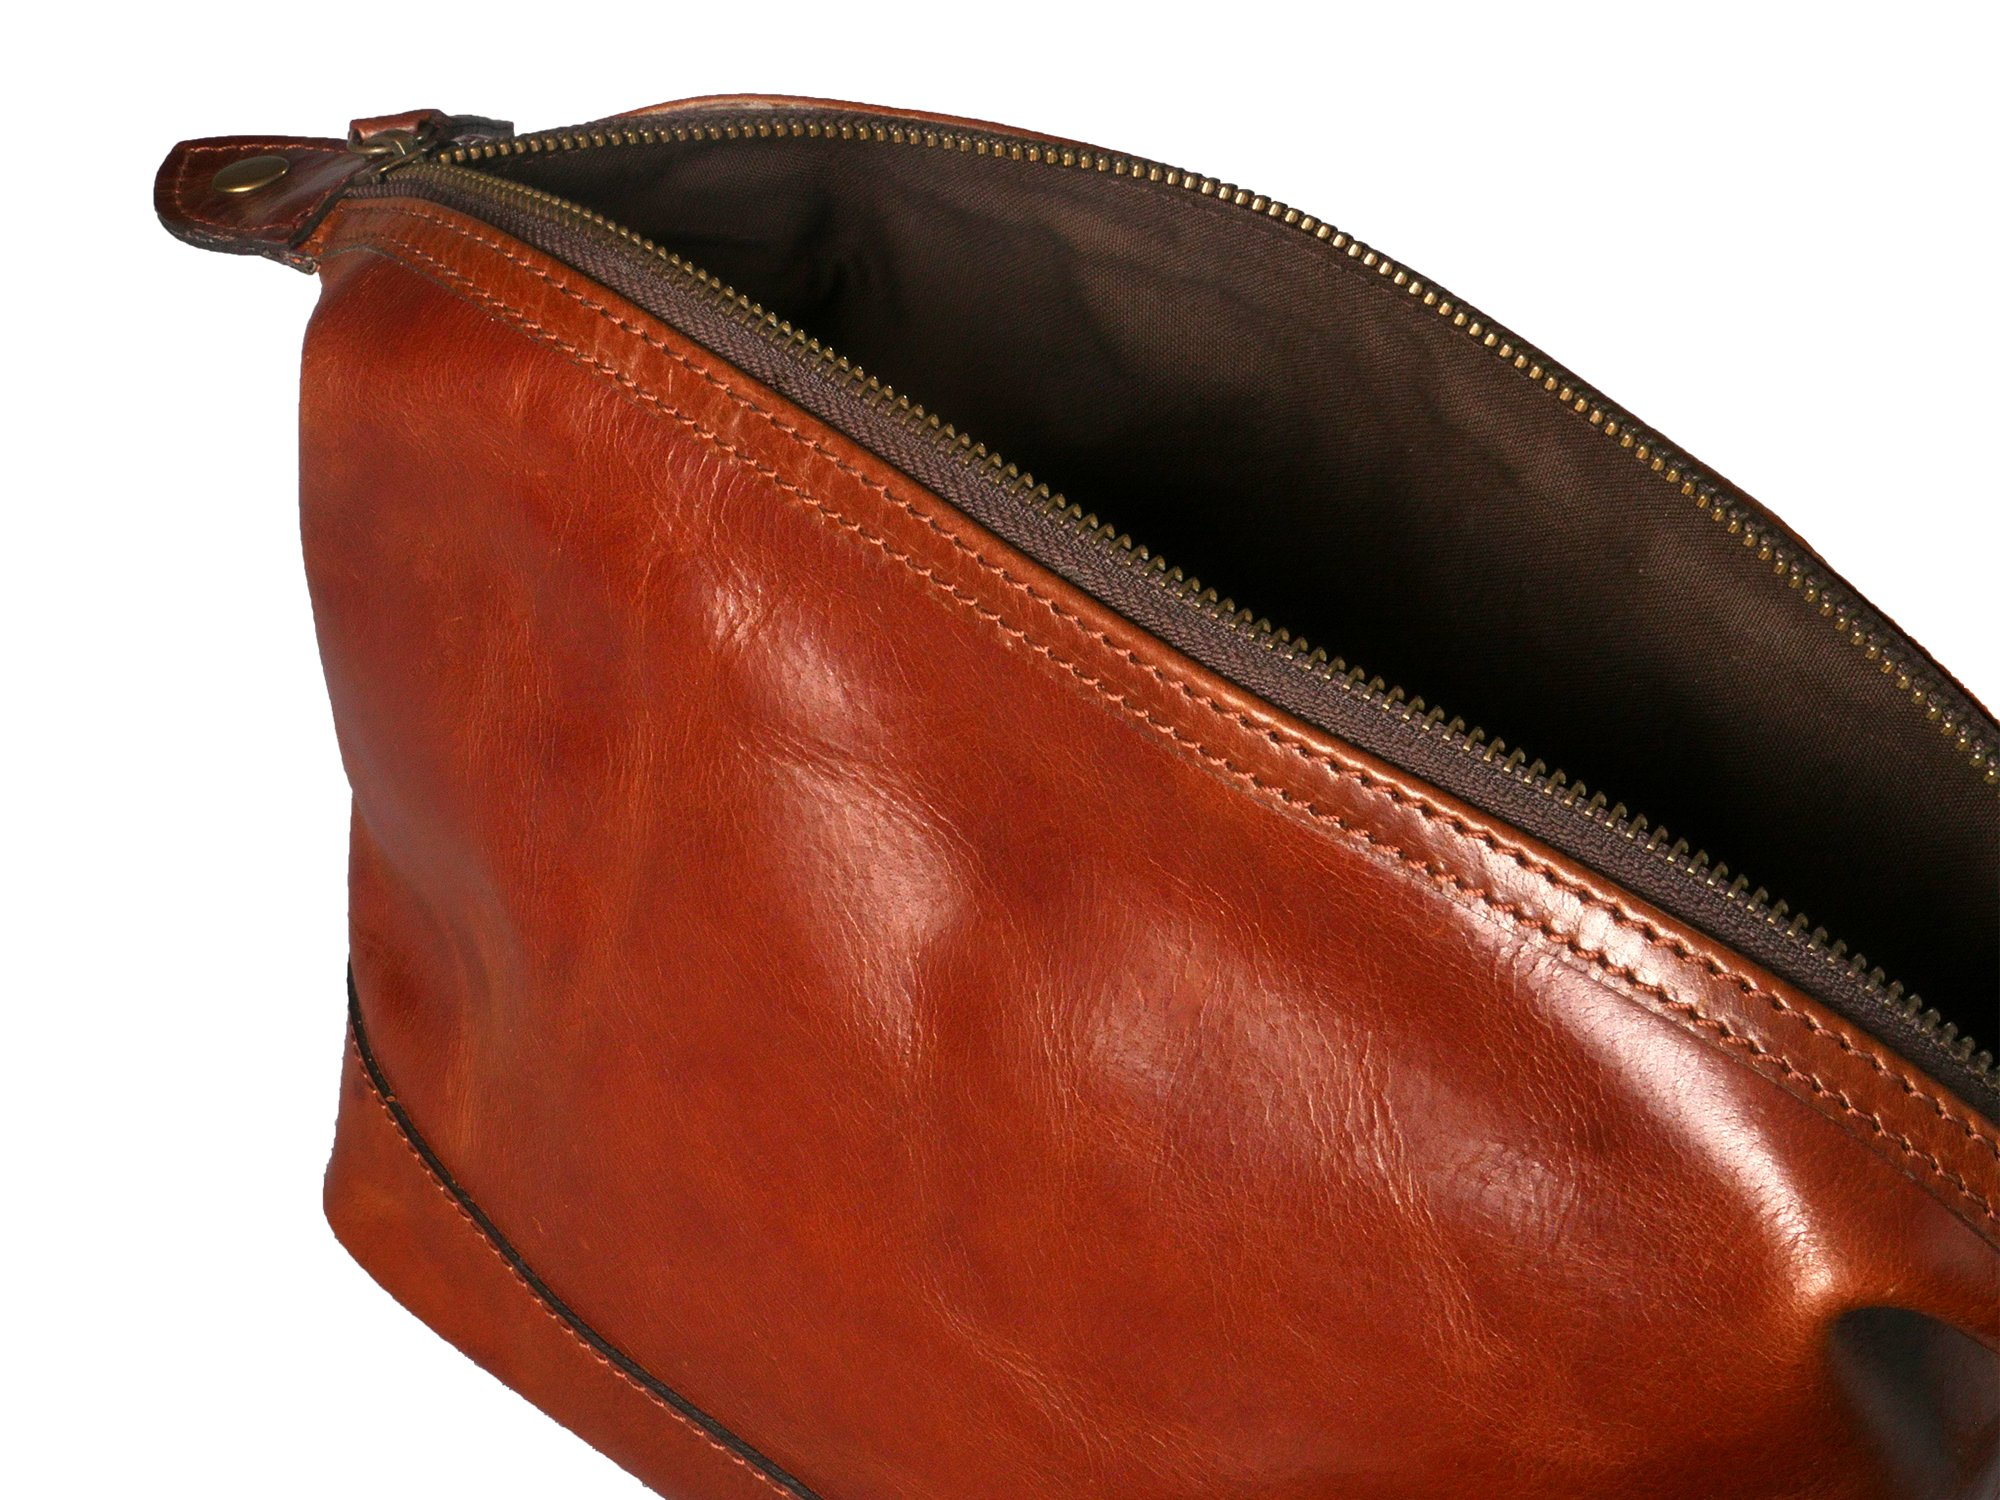 Leather Toiletry Bag for Men – Zippered Dopp Kit Organizer – Brown Travel Shaving Kit Case (9x5x7) by Bayfield Bags by Bayfield Bags (Image #4)